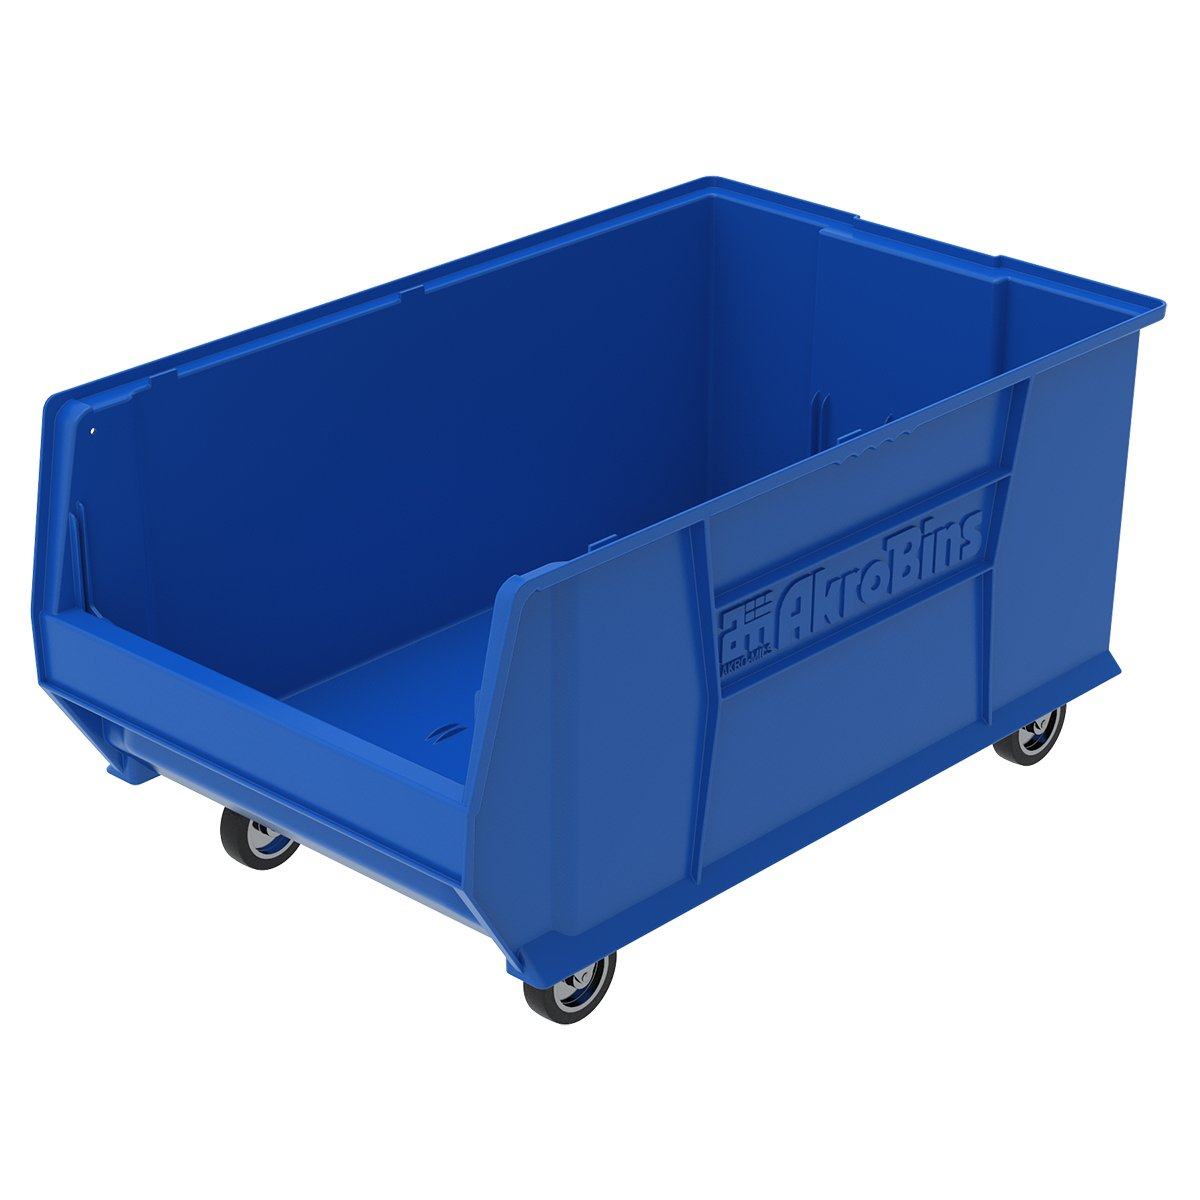 Akro-Mils 30290 Mobile Super Size Plastic Stacking Storage Akro Bin, 29-Inch x 18-Inch x 12-Inch, Blue